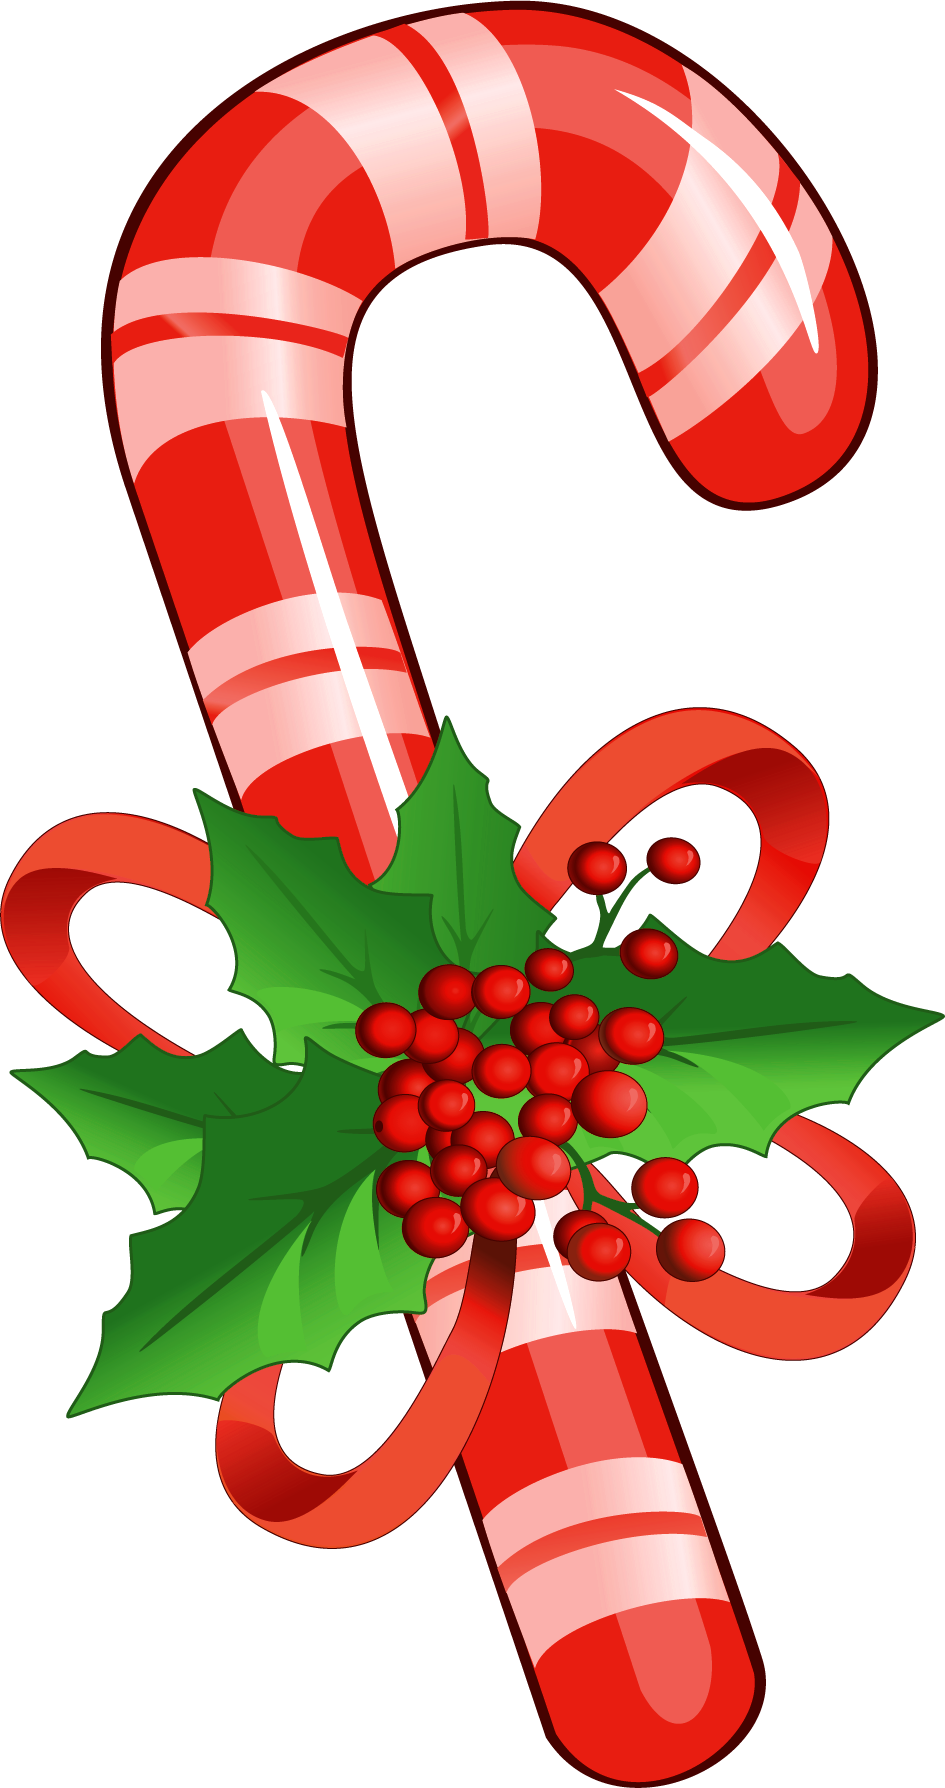 Christmas Candy Cane PNG Image